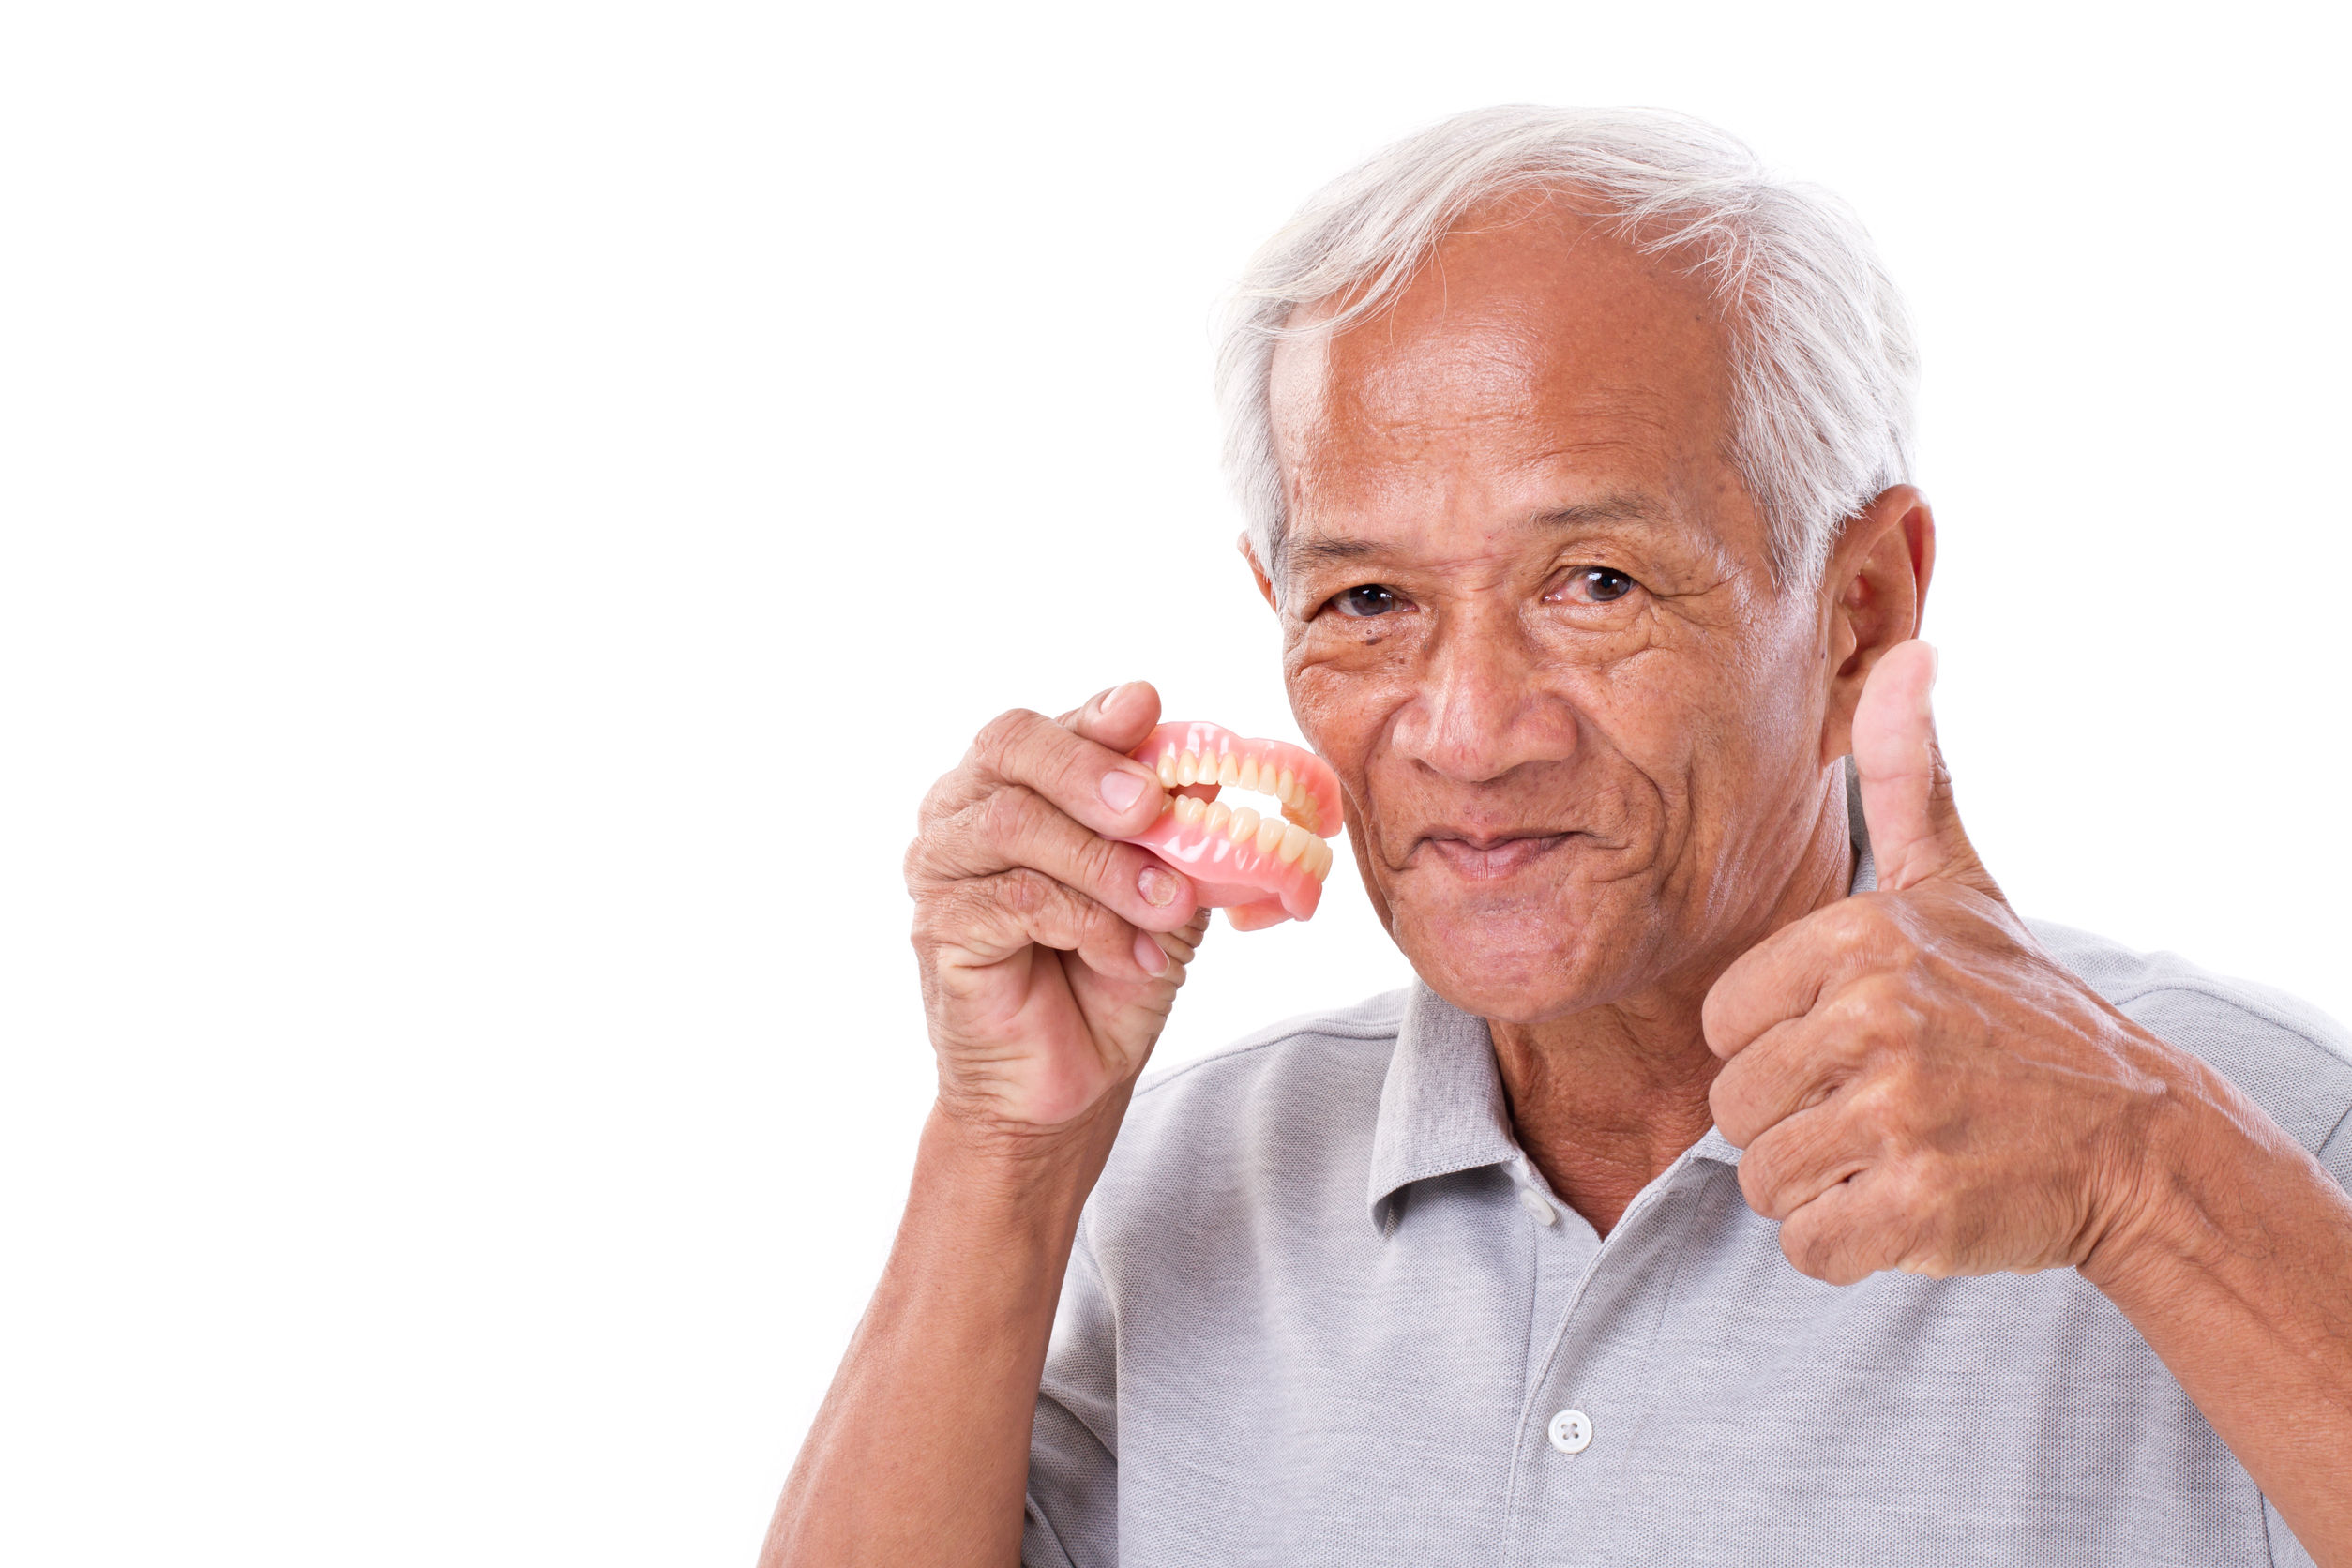 Ooltewah Affordable Denture Care